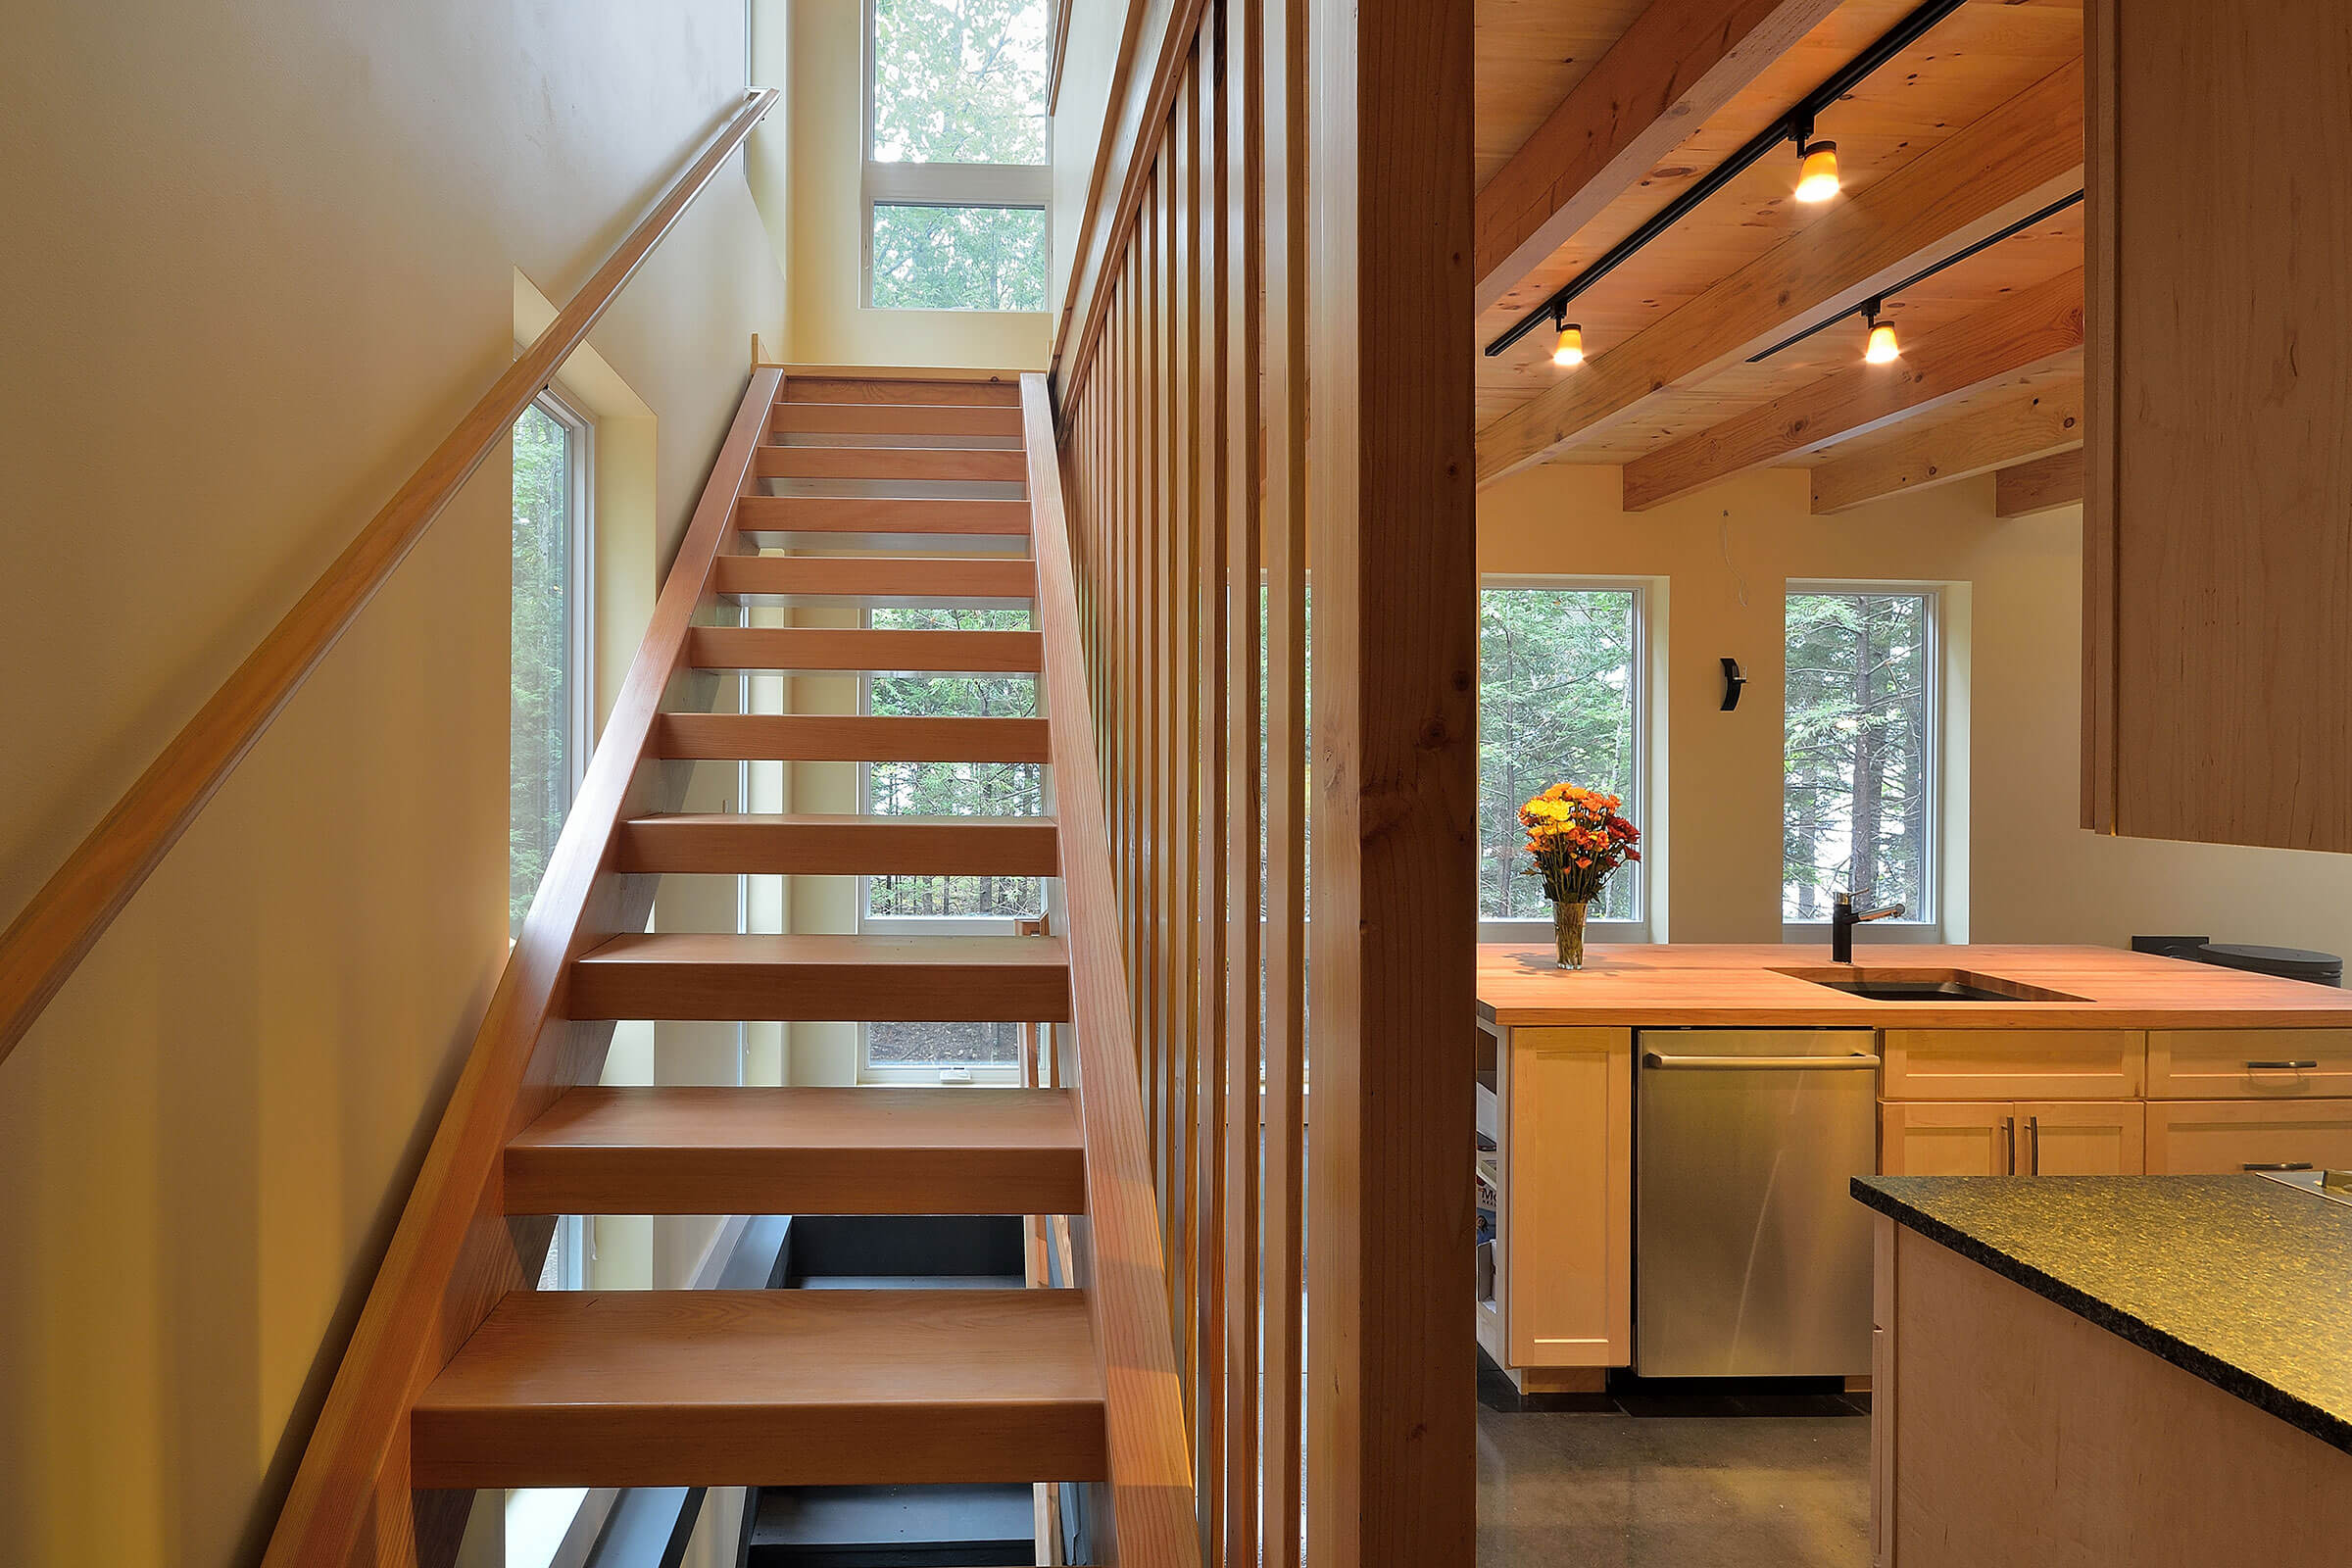 Staircase And Kitchen In Contemporary Cabin With Marvin Essential Windows